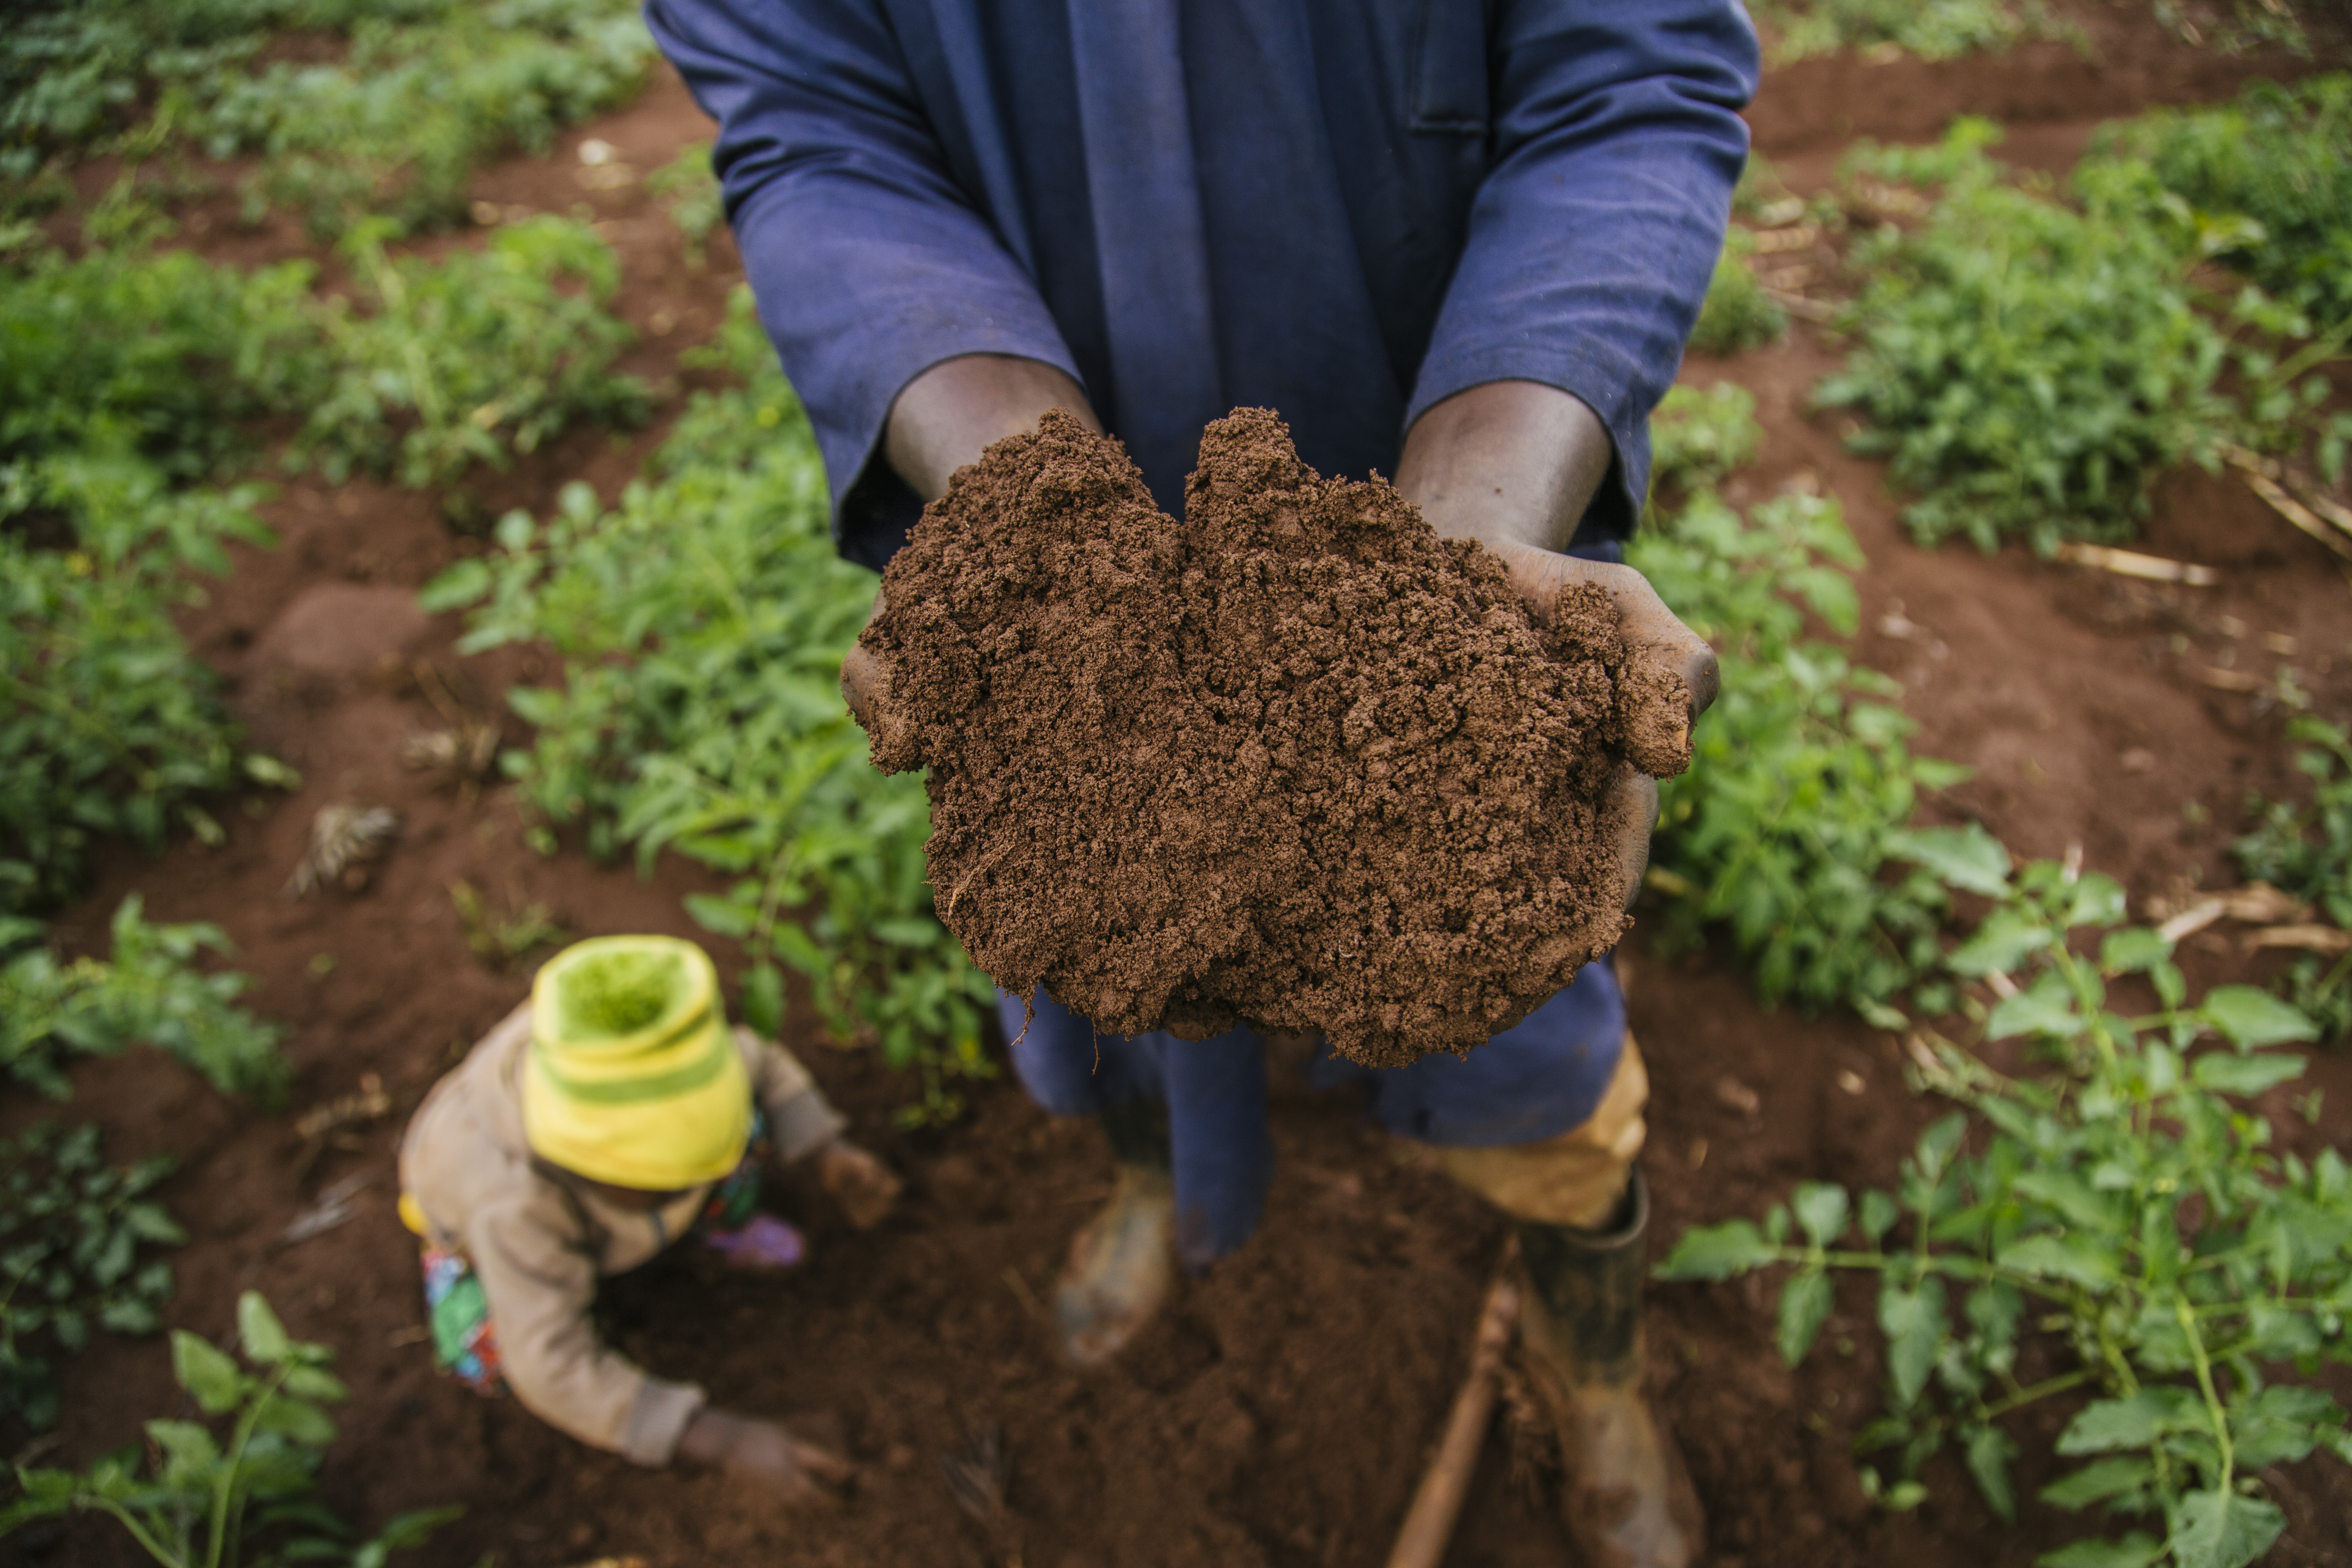 Douglas Mungai holds up soil on his farm in Murang'a county, Kenya. (Photo: Robert Neptune/TNC)